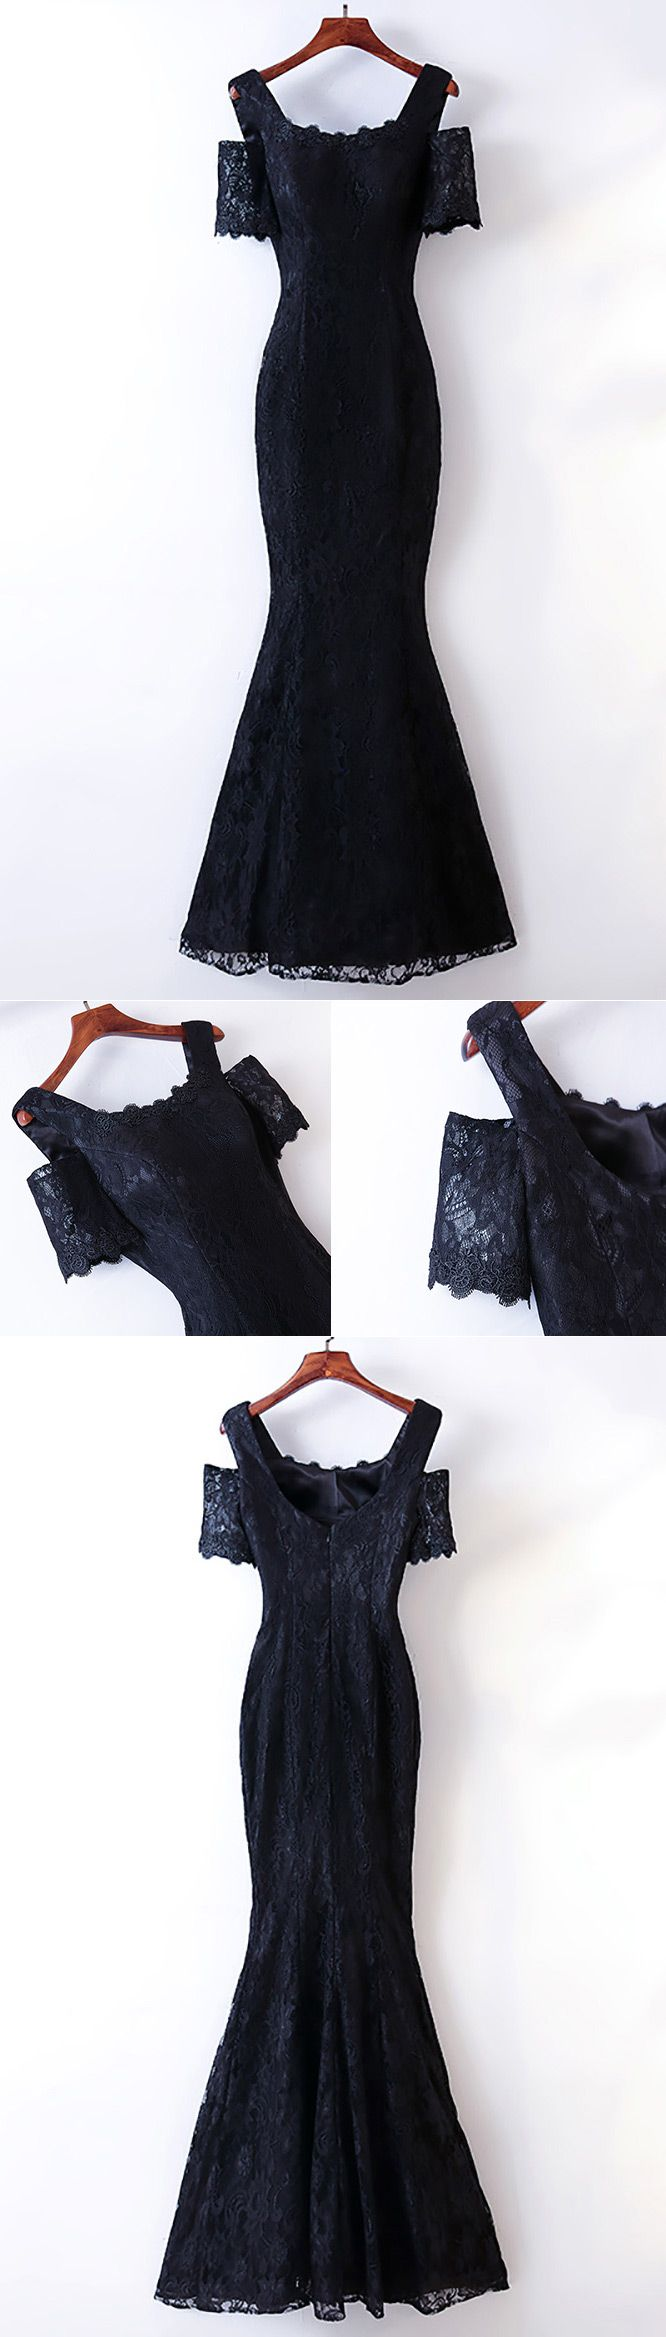 Only $118, Elegant Long Black Lace Mermaid Prom Dress Cold Shoulder #MYX18162 at #SheProm. SheProm is an online store with thousands of dresses, range from Prom,Formal,Evening,Black,Long Black Dresses,Black Lace Dresses,Lace Dresses,Long Dresses,Customizable Dresses and so on. Not only selling formal dresses, more and more trendy dress styles will be updated daily to our store. With low price and high quality guaranteed, you will definitely like shopping from us. Click shop now!